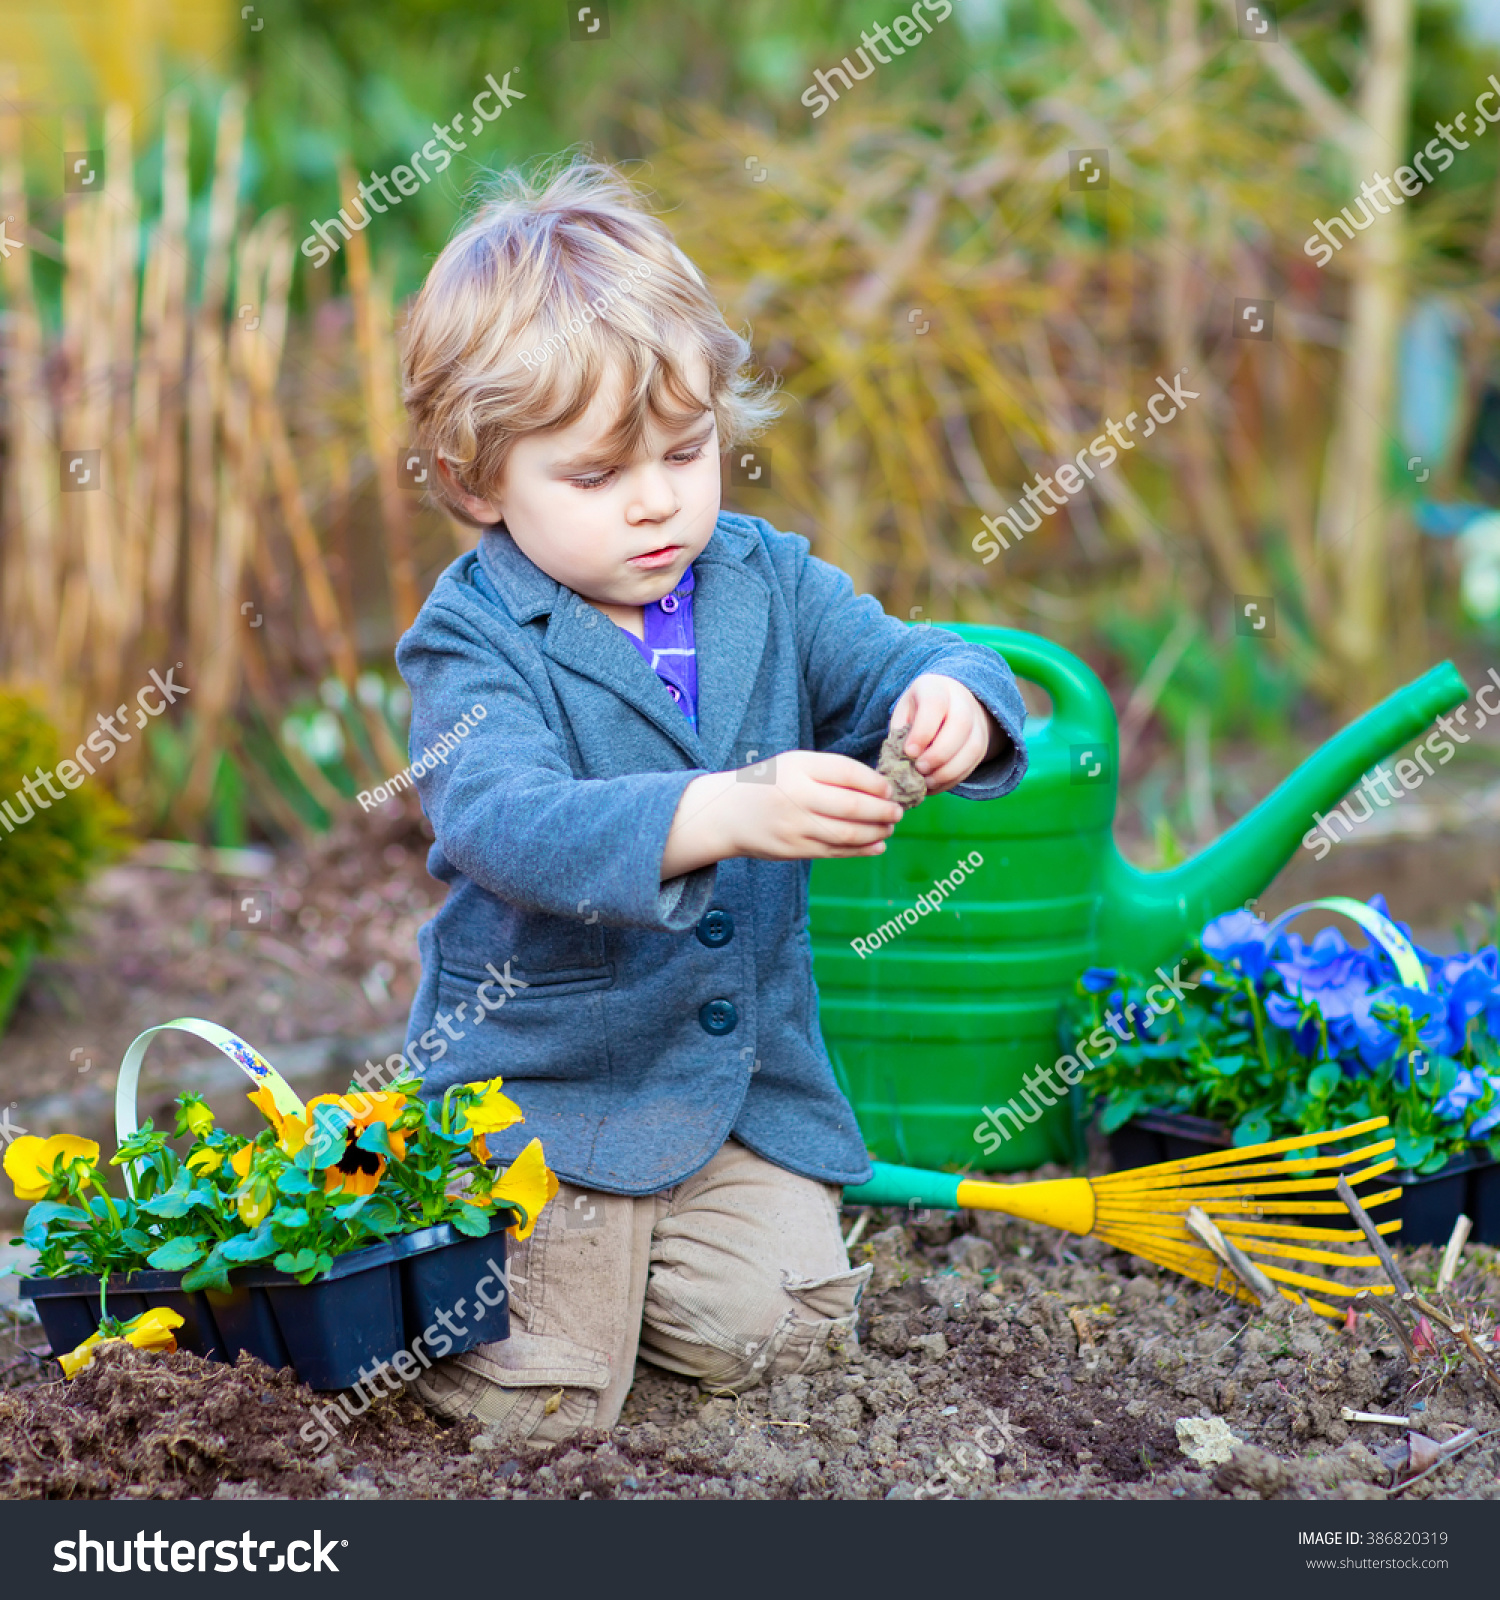 active adorable kid boy helping with gardening in spring garden funny child planting flowers